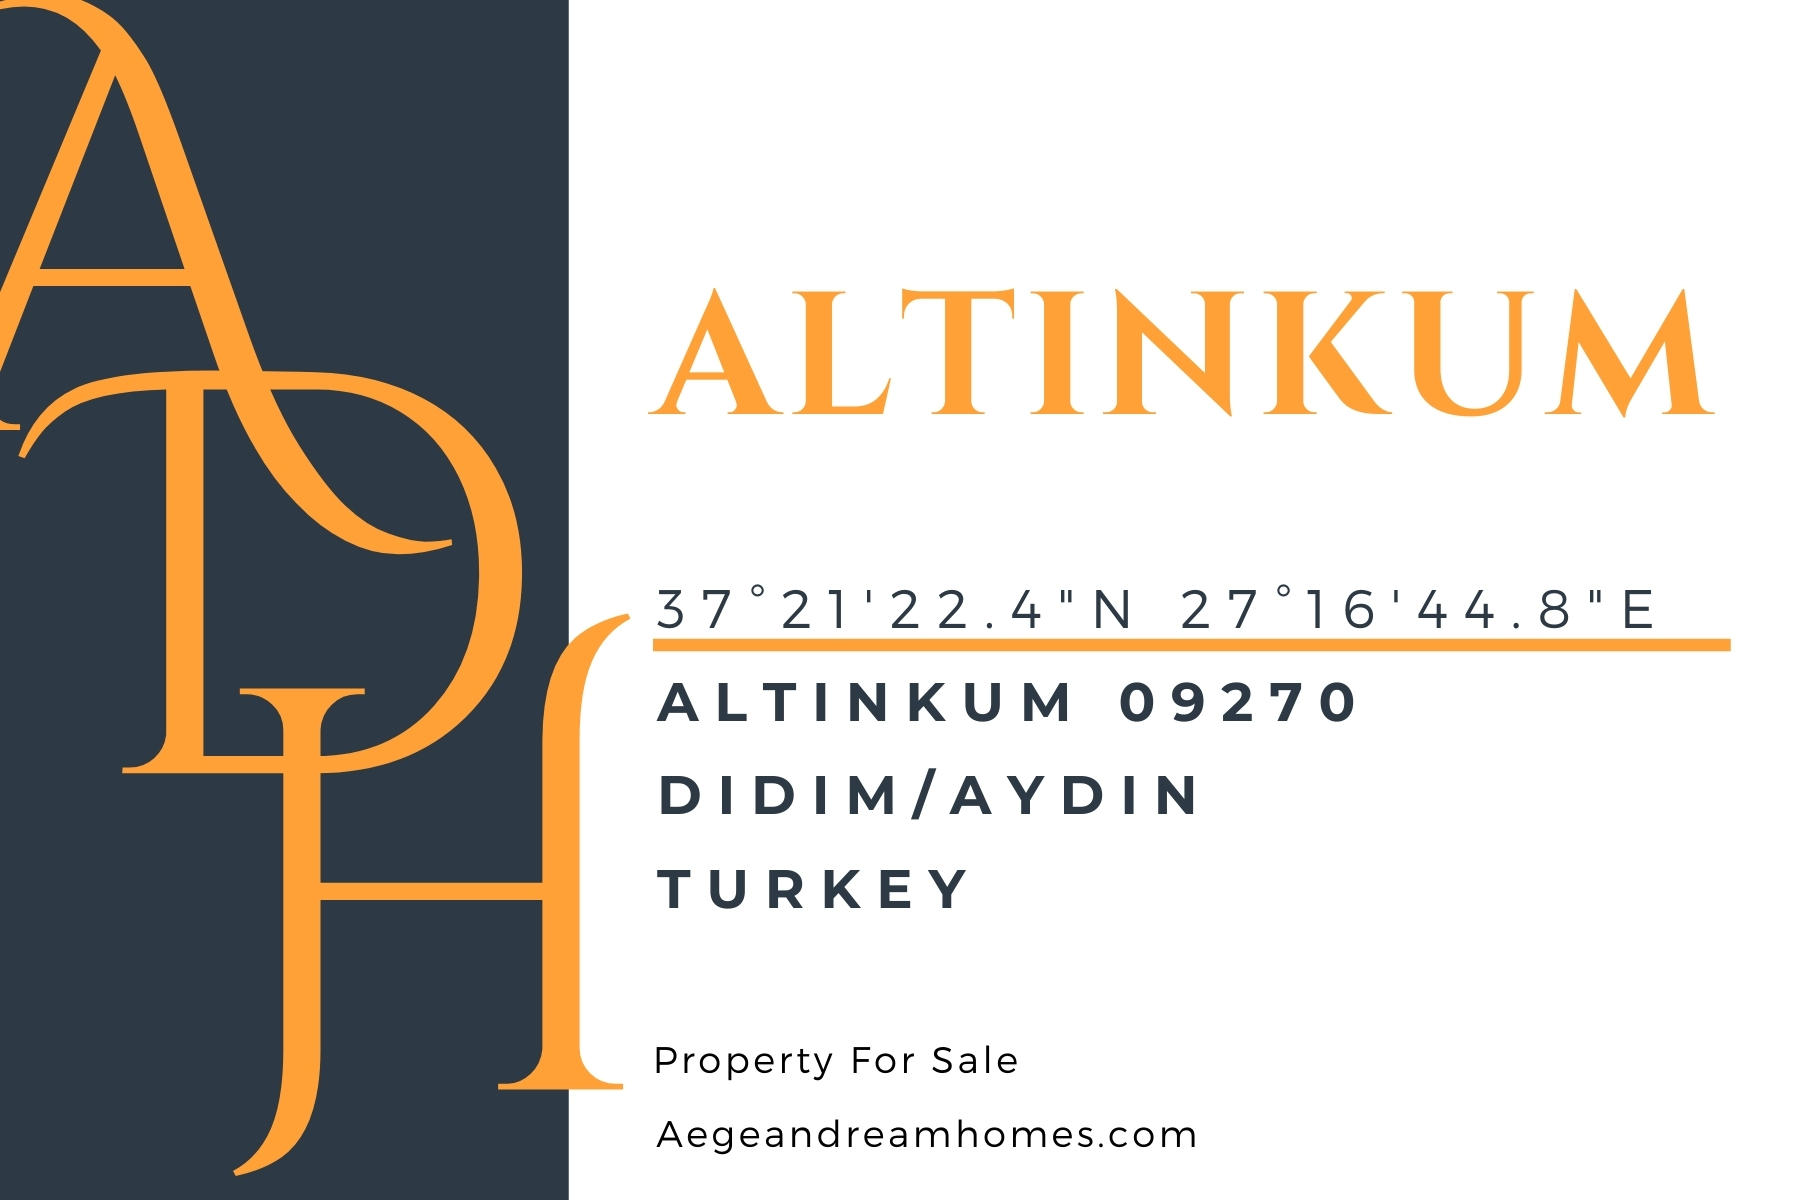 Altinkum postcard. Altinkum address, locations and property for sale.